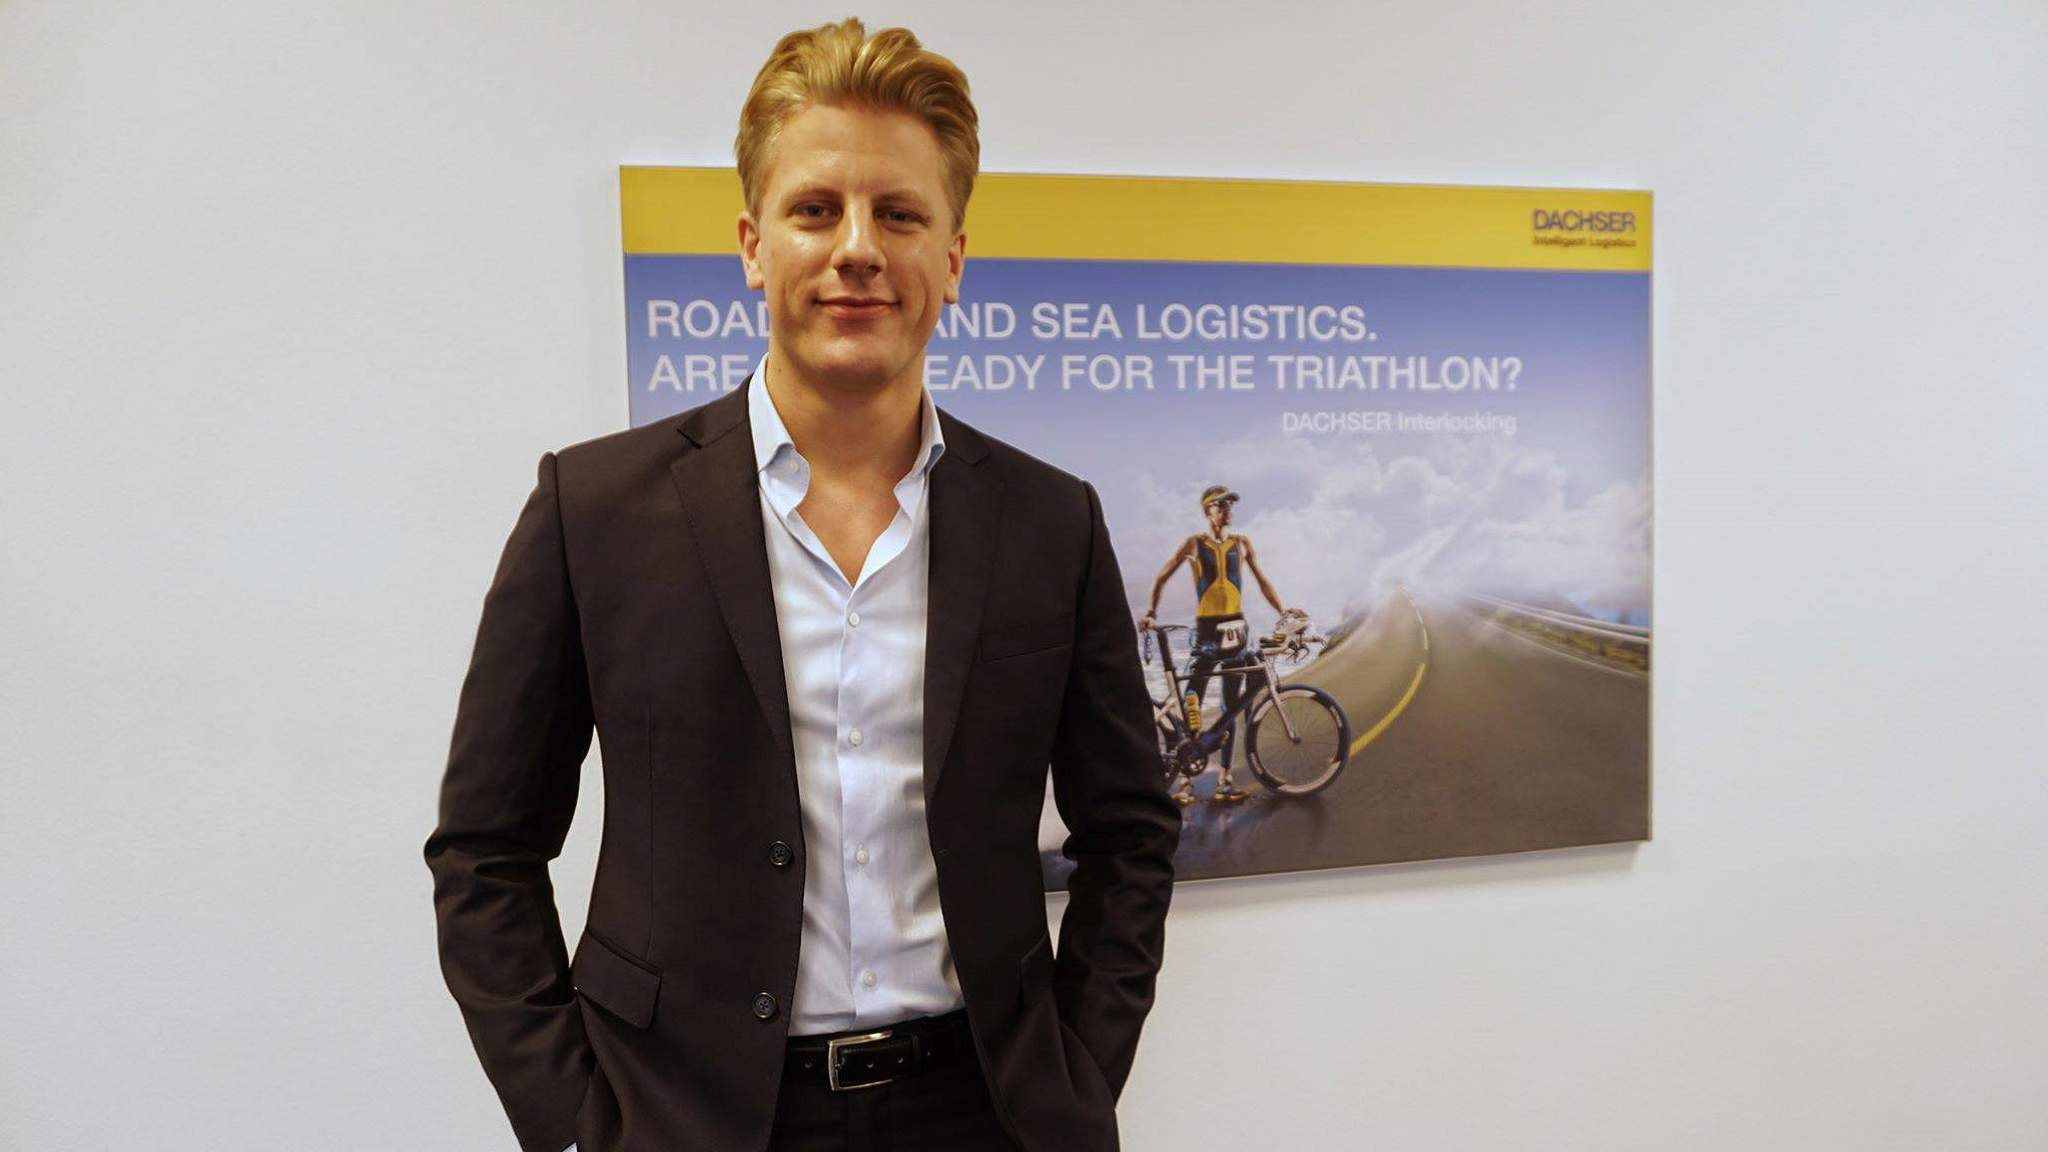 Niclas Andersson, Sales Executive hos DACHSER Swedens kontor för Air & Sea Logistics